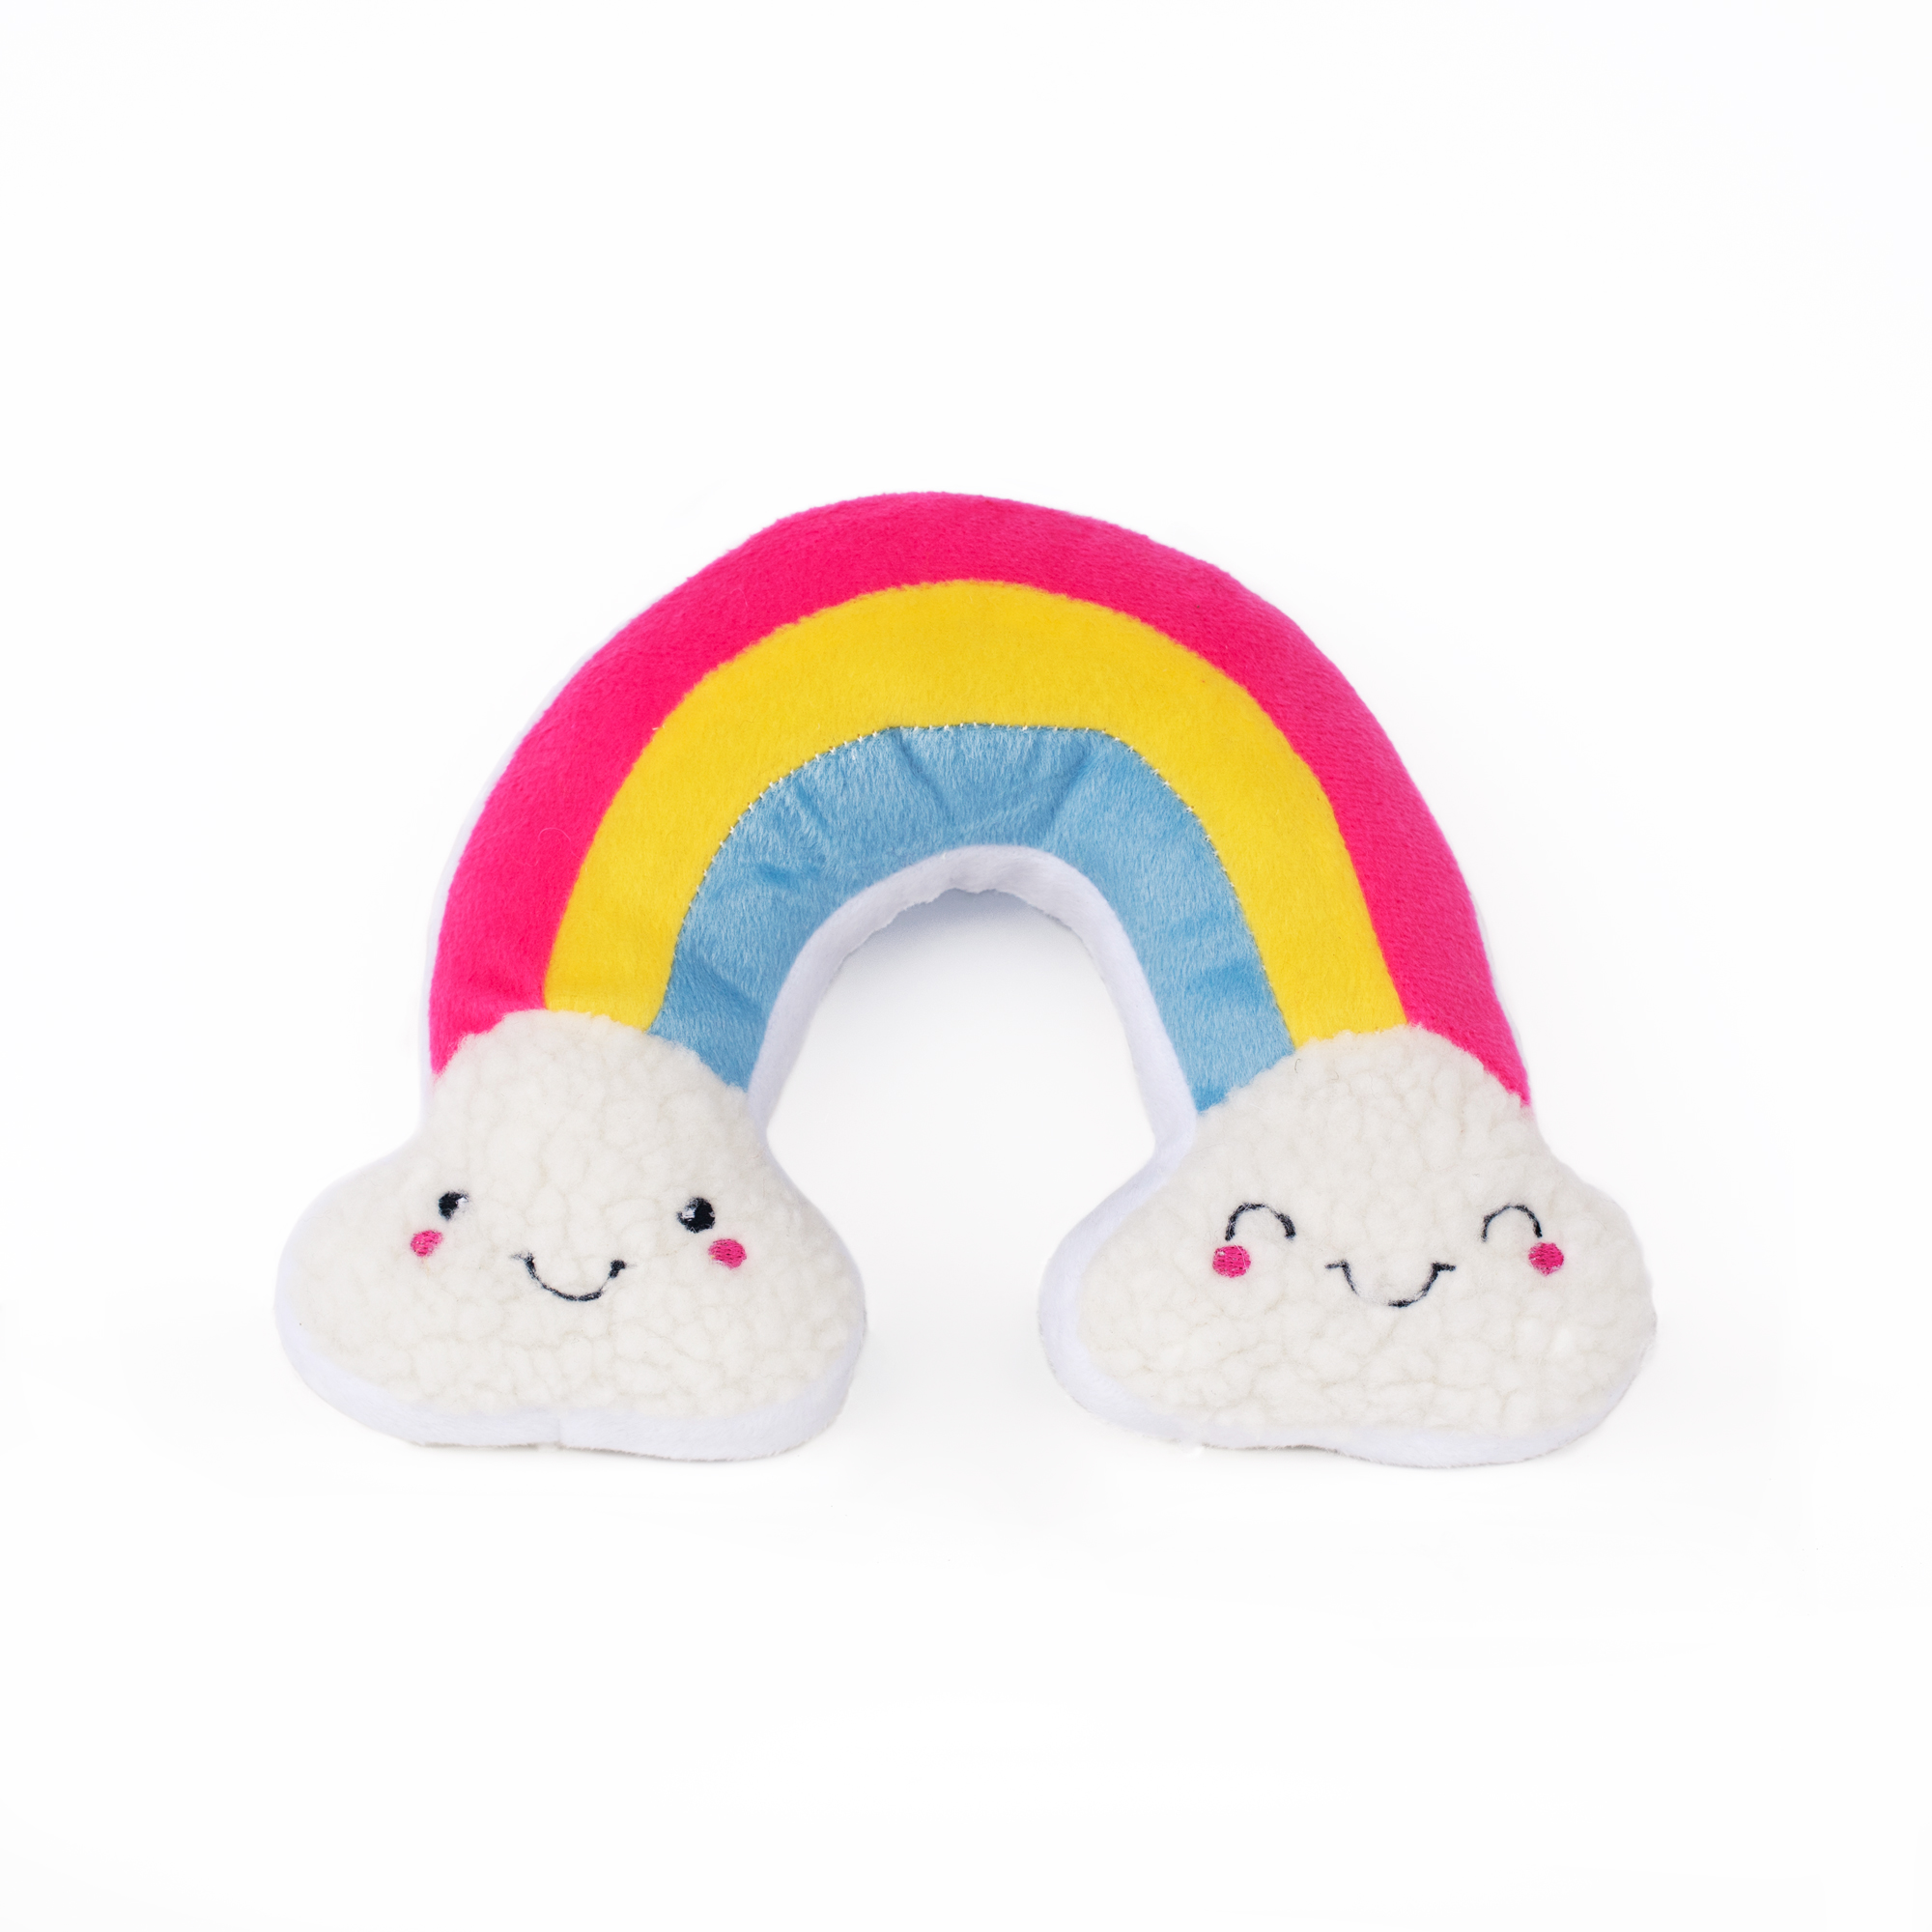 Rainbow Clouds plush squeaky toy